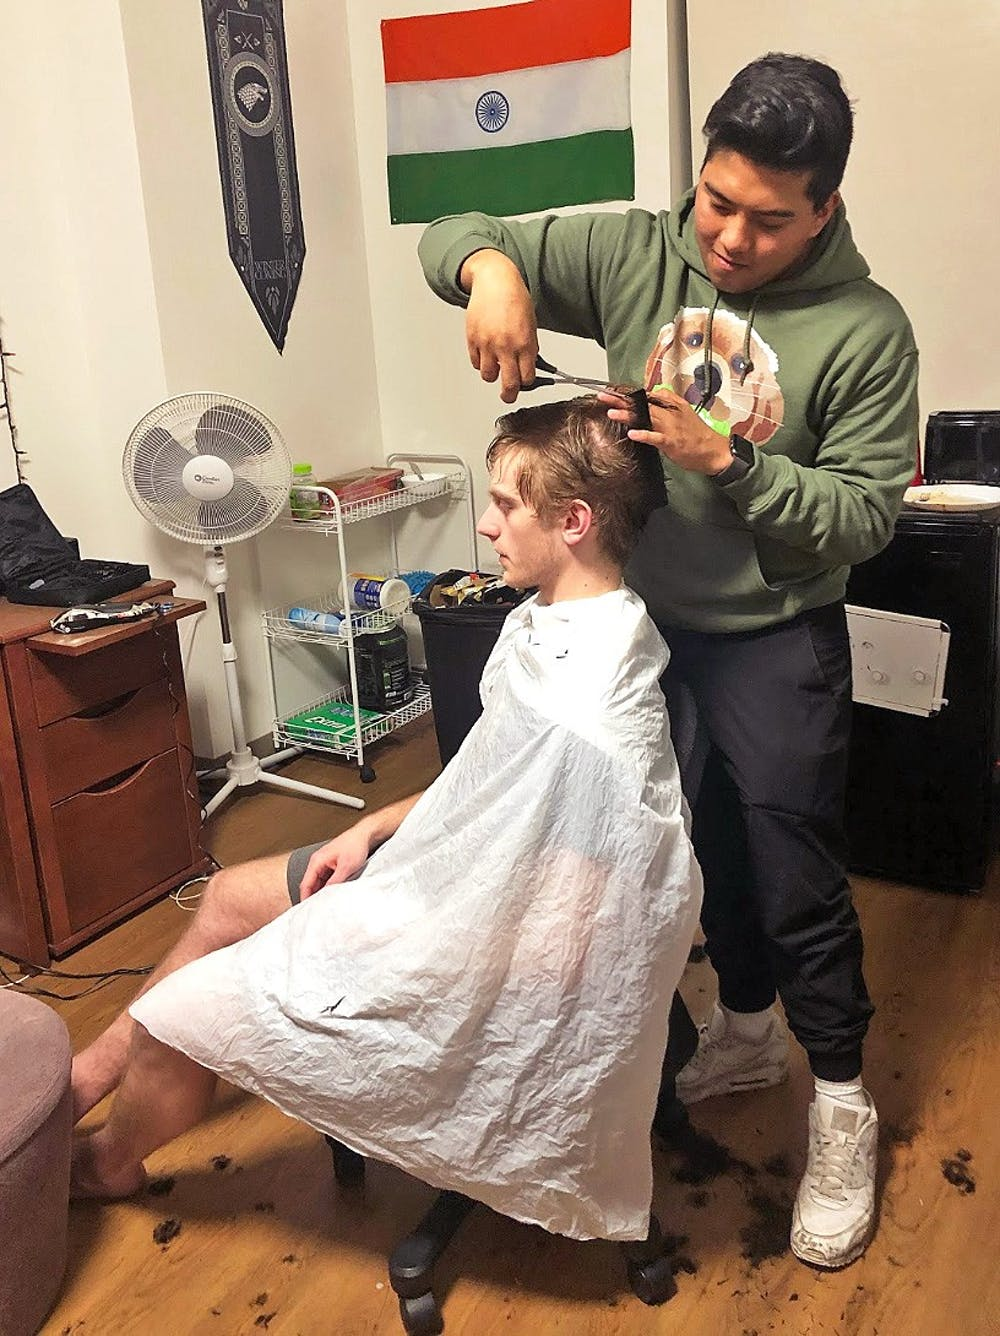 <p>Tucson snips and socializes giving his clients a unique haircutting experience.</p>